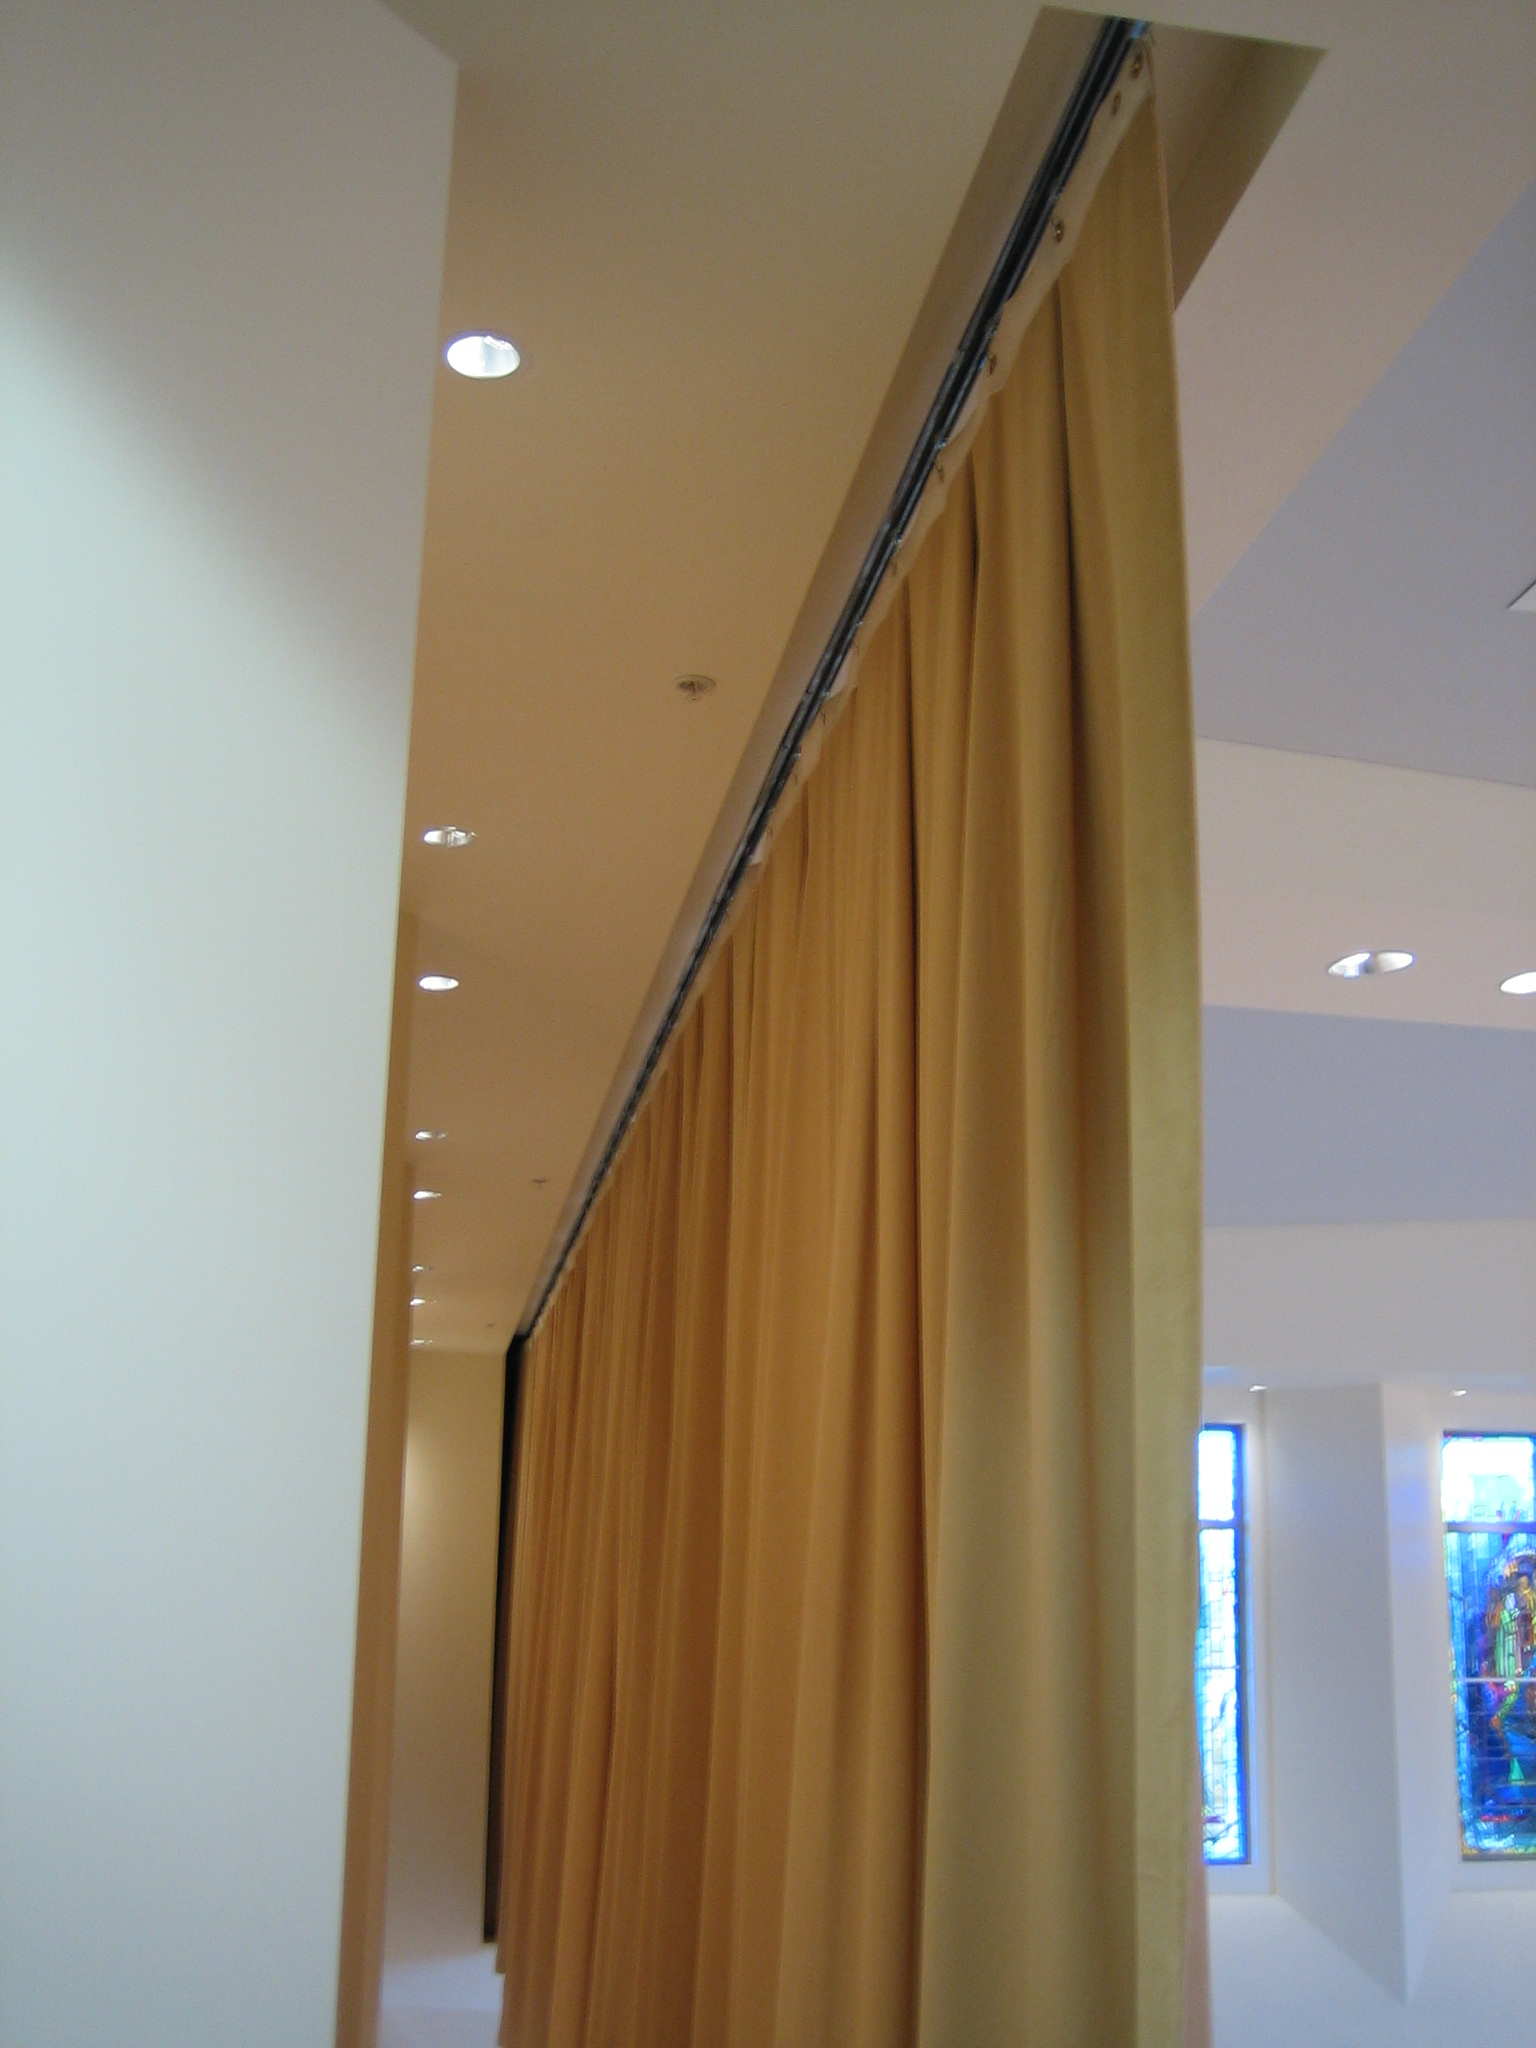 curt sound stop curtains portscre screen htm soundproofing portable reducing absorbing curtan